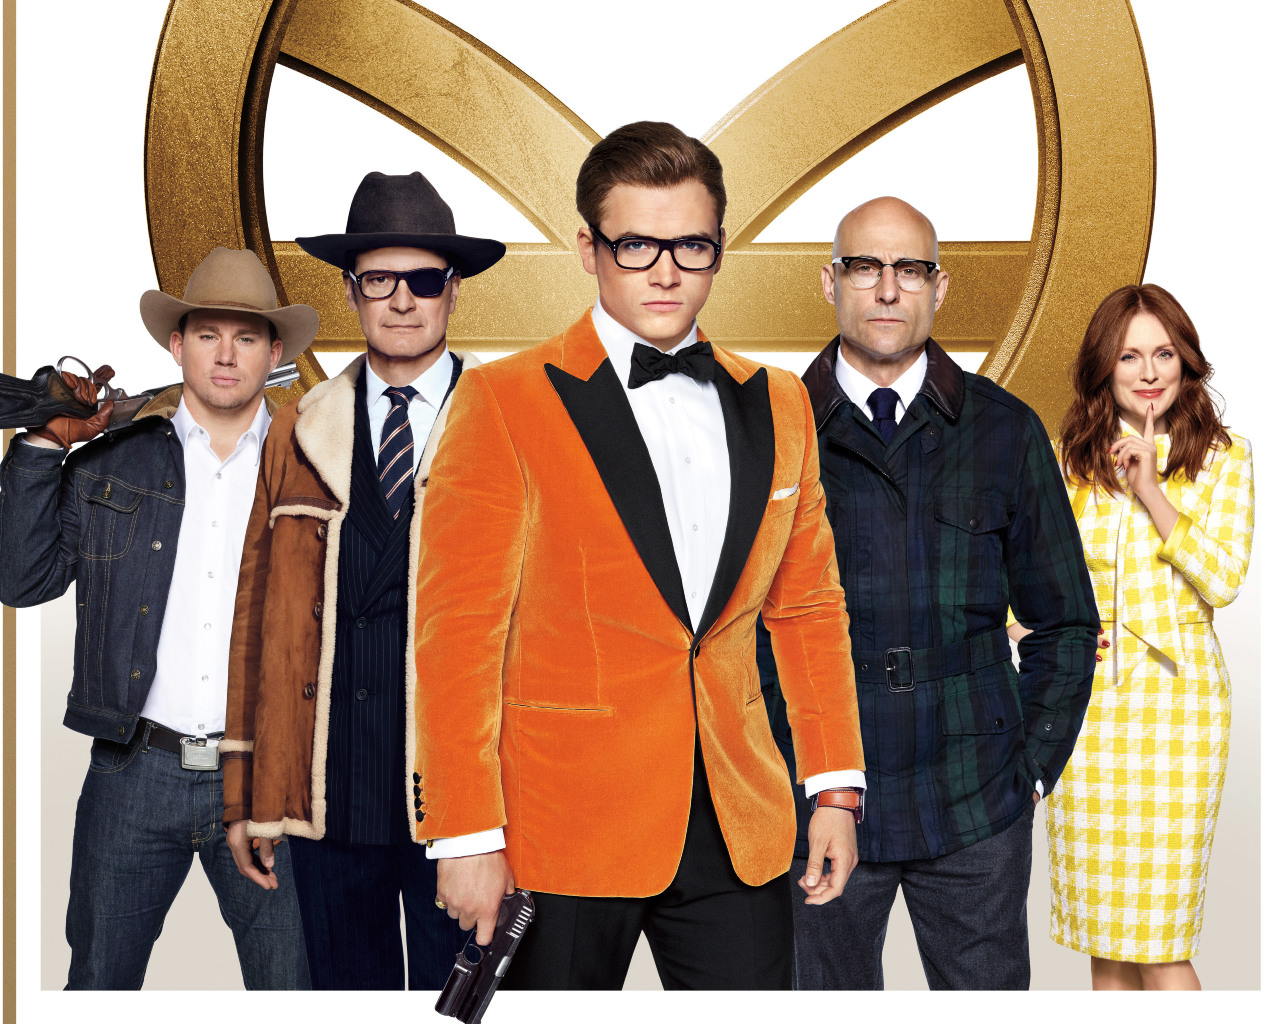 Kingsman The Golden Circle Wallpaper: Kingsman The Golden Circle Poster, HD 4K Wallpaper